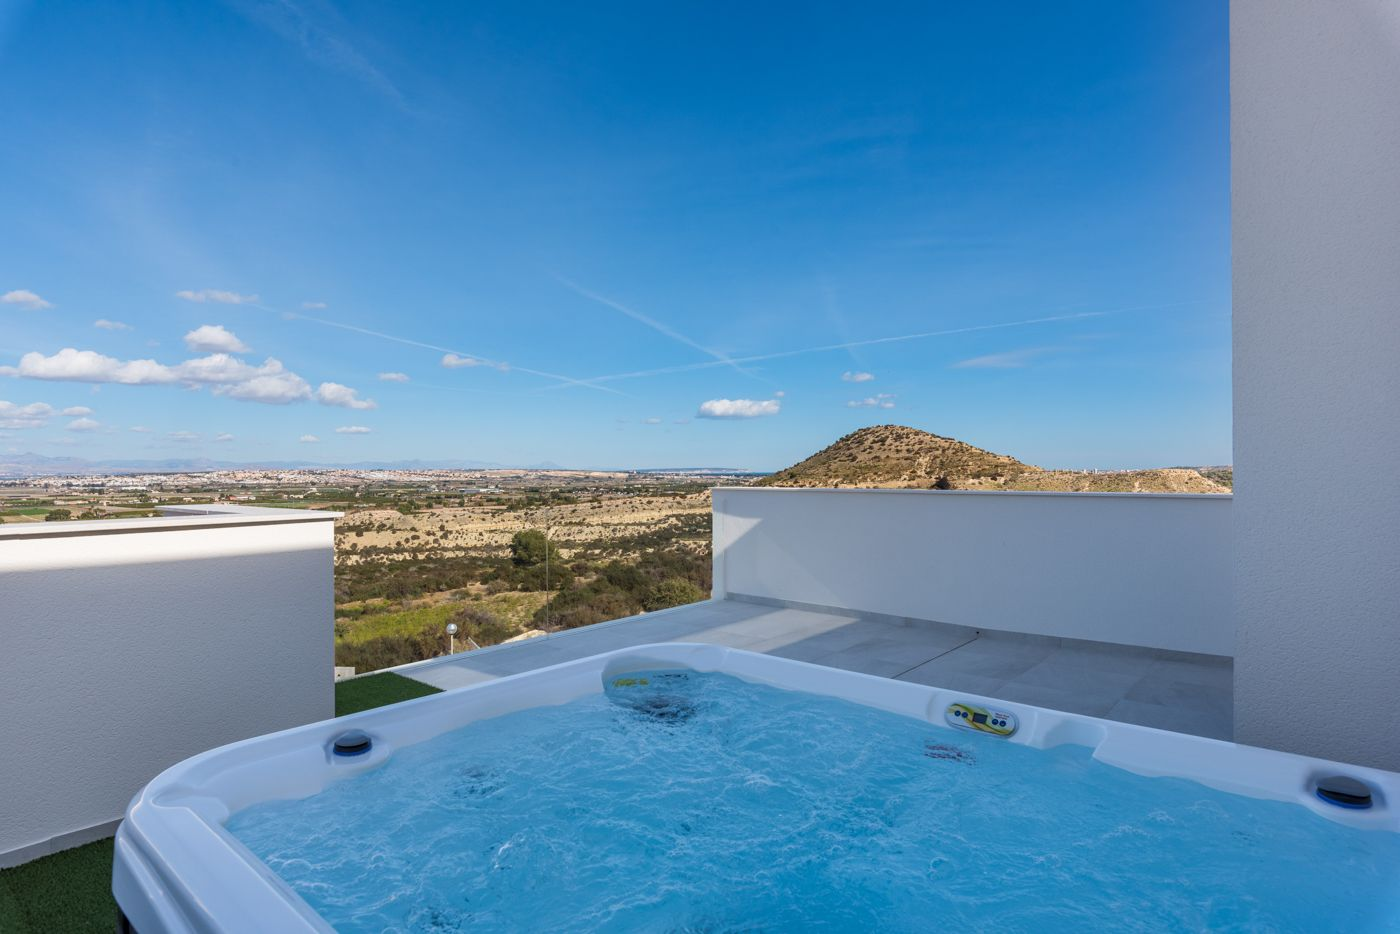 Modern villa with impressive views over the skyline of Guardamar del Segura